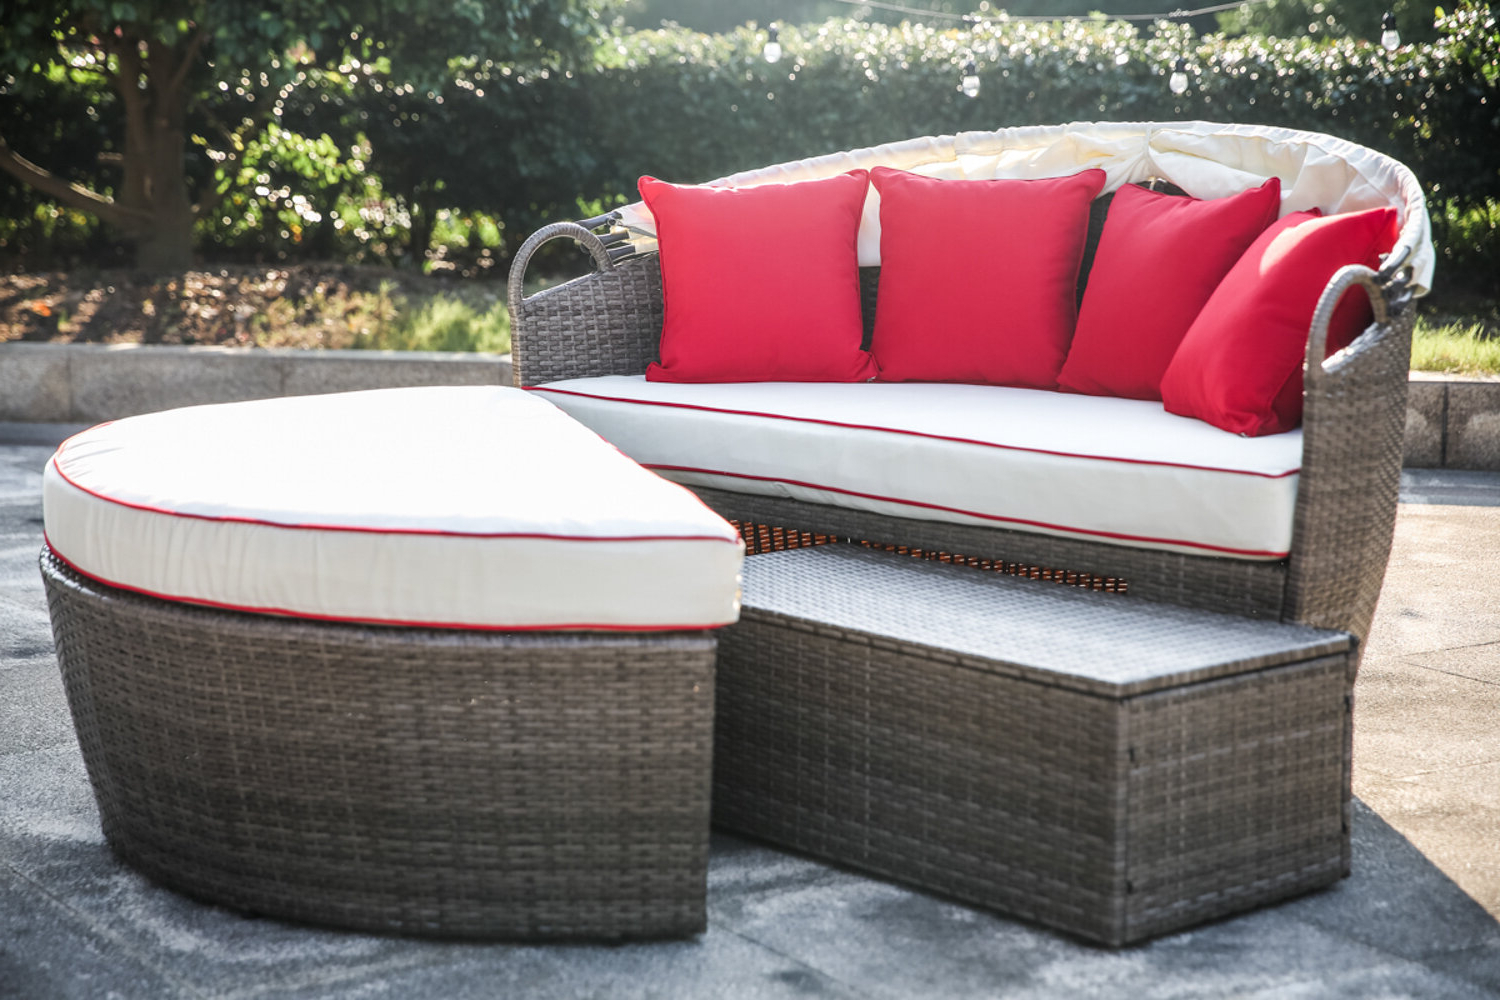 Fansler Patio Daybed With Cushions Within Best And Newest Behling Canopy Patio Daybeds With Cushions (View 2 of 25)